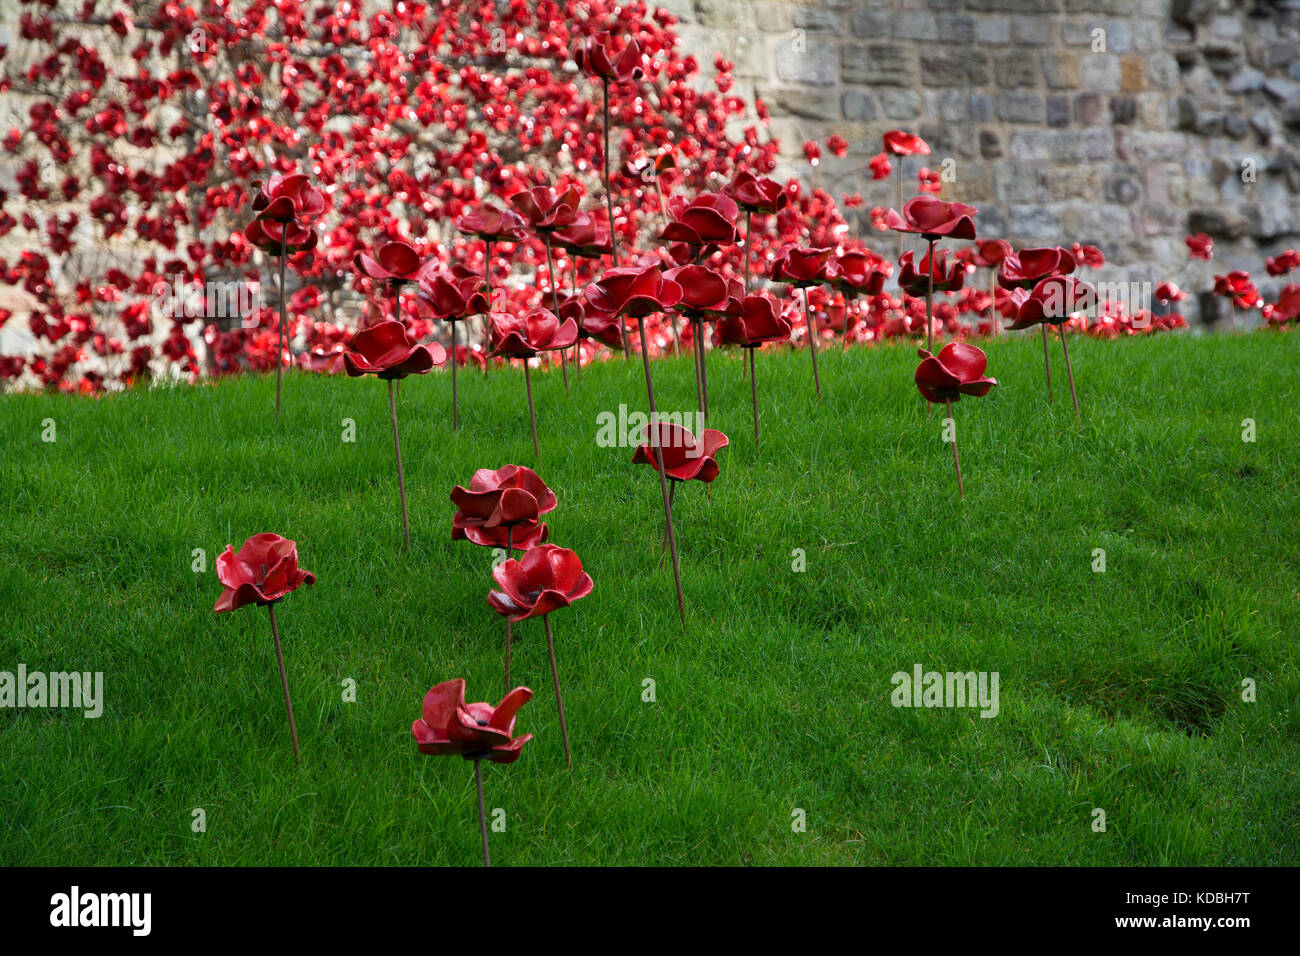 Weeping Window Poppy Sculpture by Paul Cummins and Tom Piper at Caernarfon Castle 2016 - Stock Image